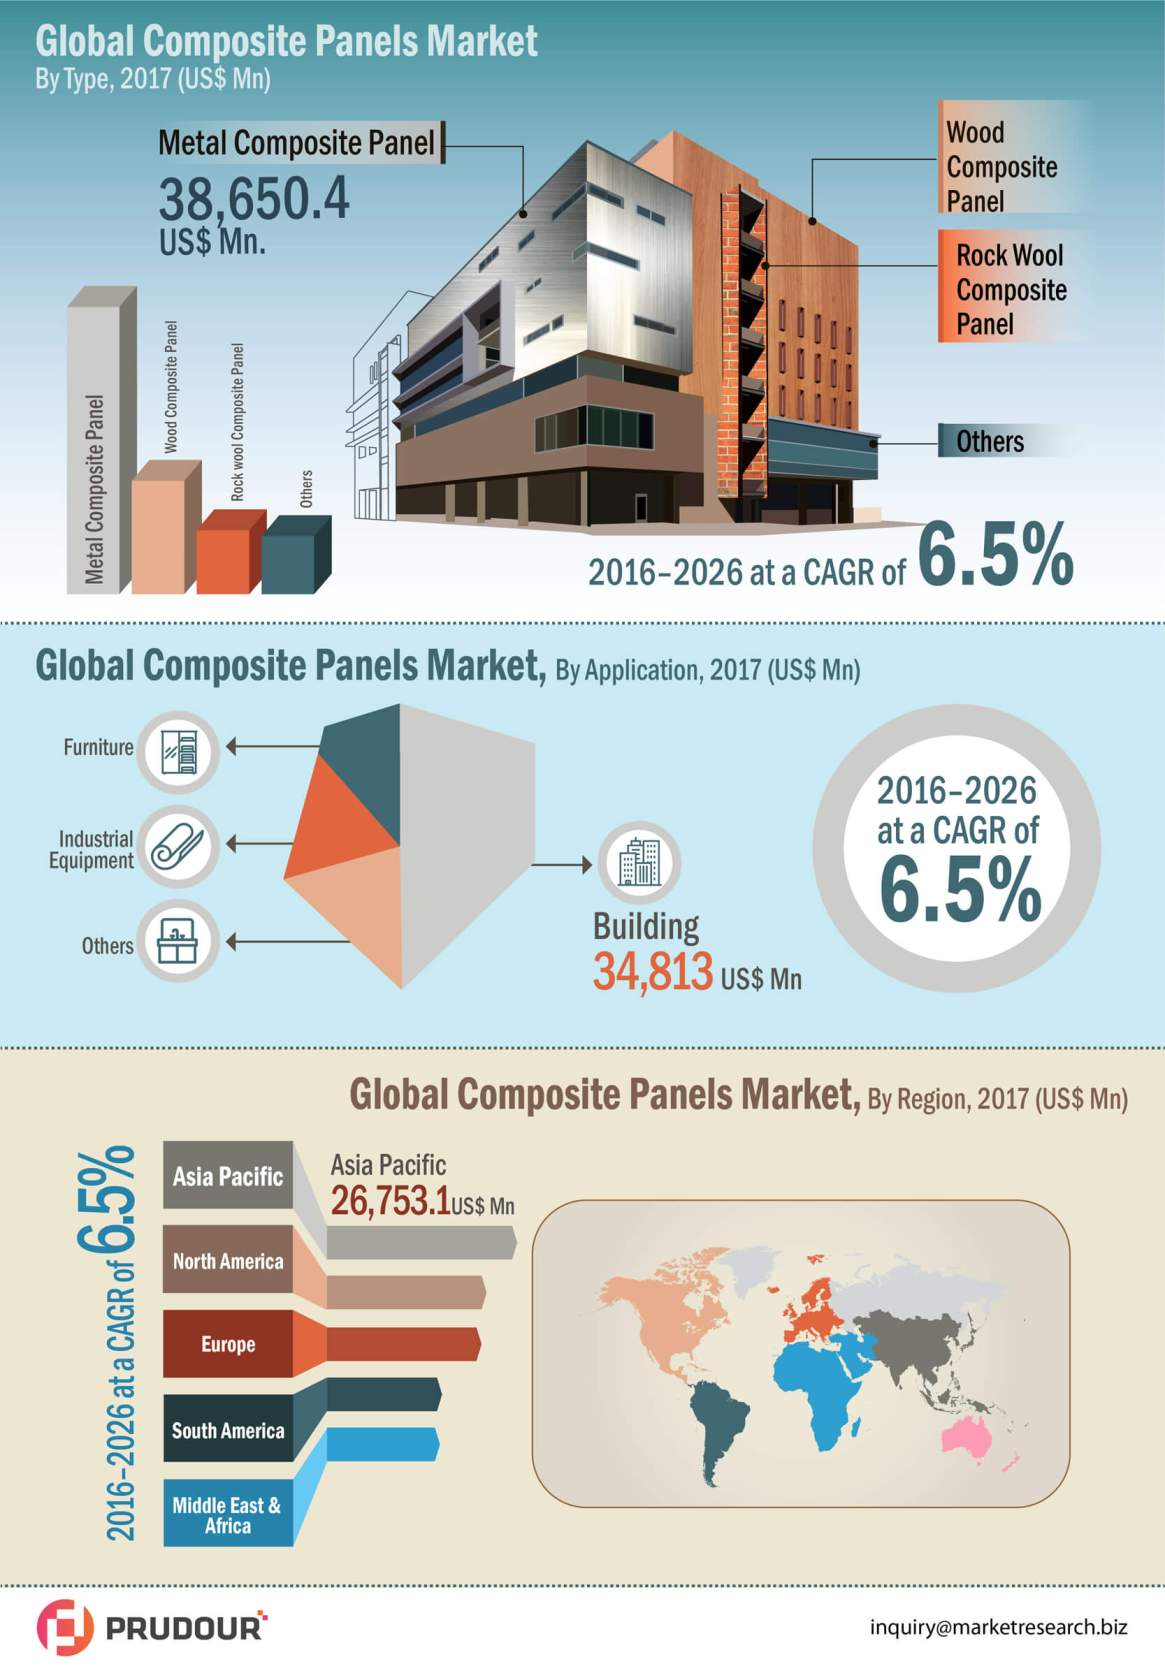 Global Composite Panel Market Revenue expected to increase US$ 2,19,429.8 Mn between 2016-2026